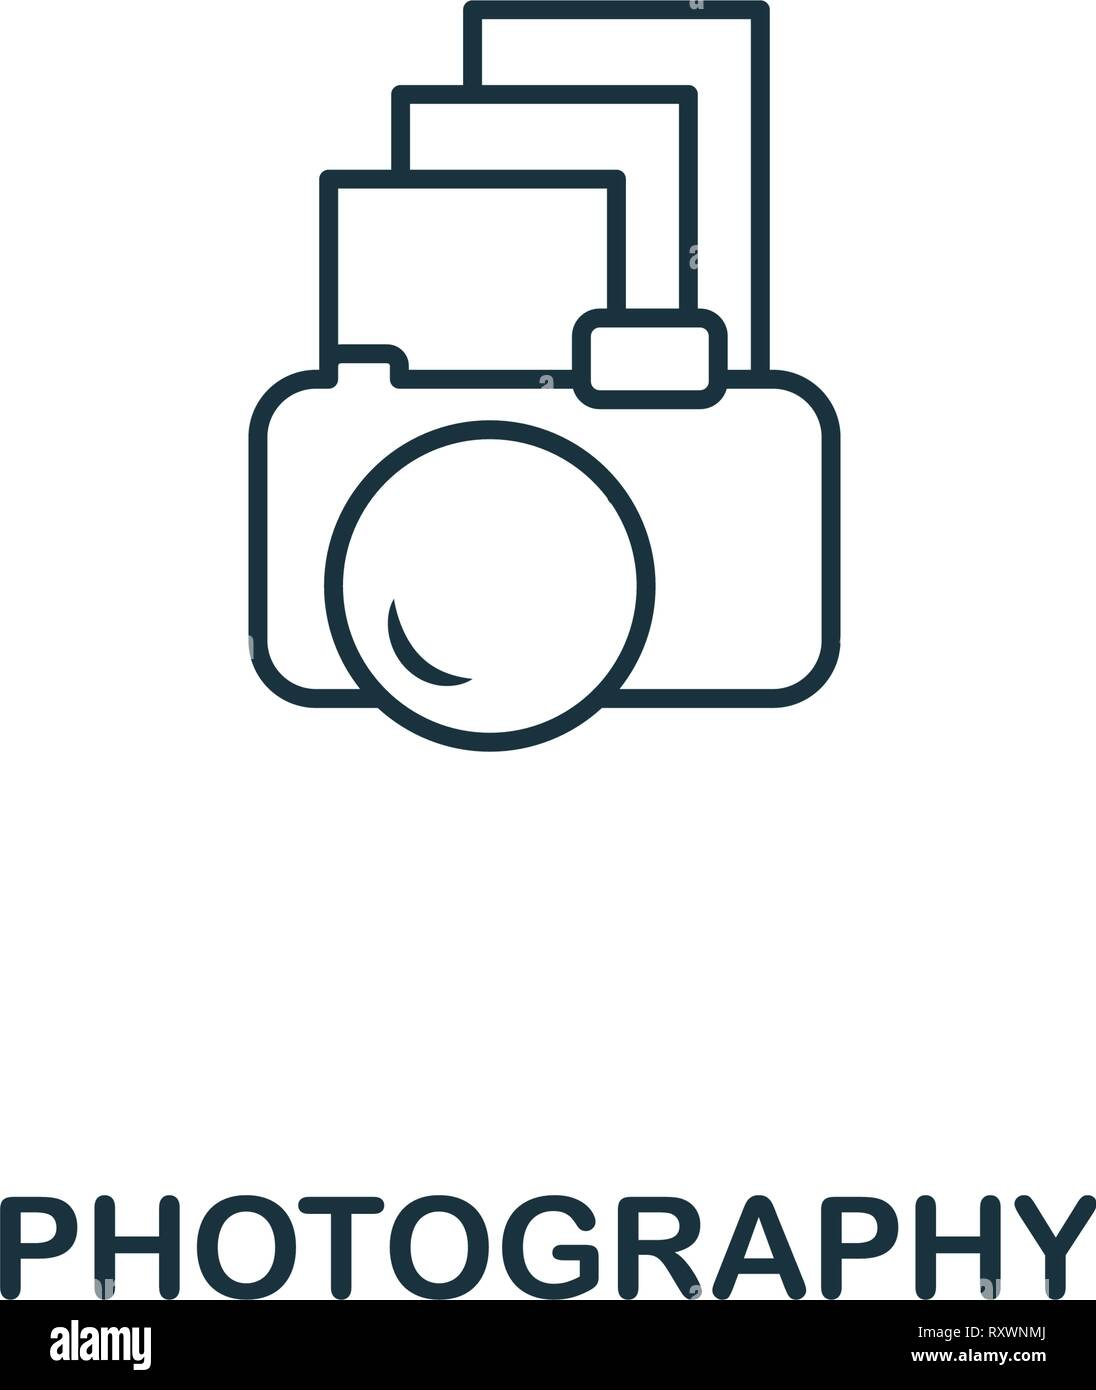 Photography icon. Thin outline style design from design ui and ux icons collection. Creative Photography icon for web design, apps, software, print - Stock Image